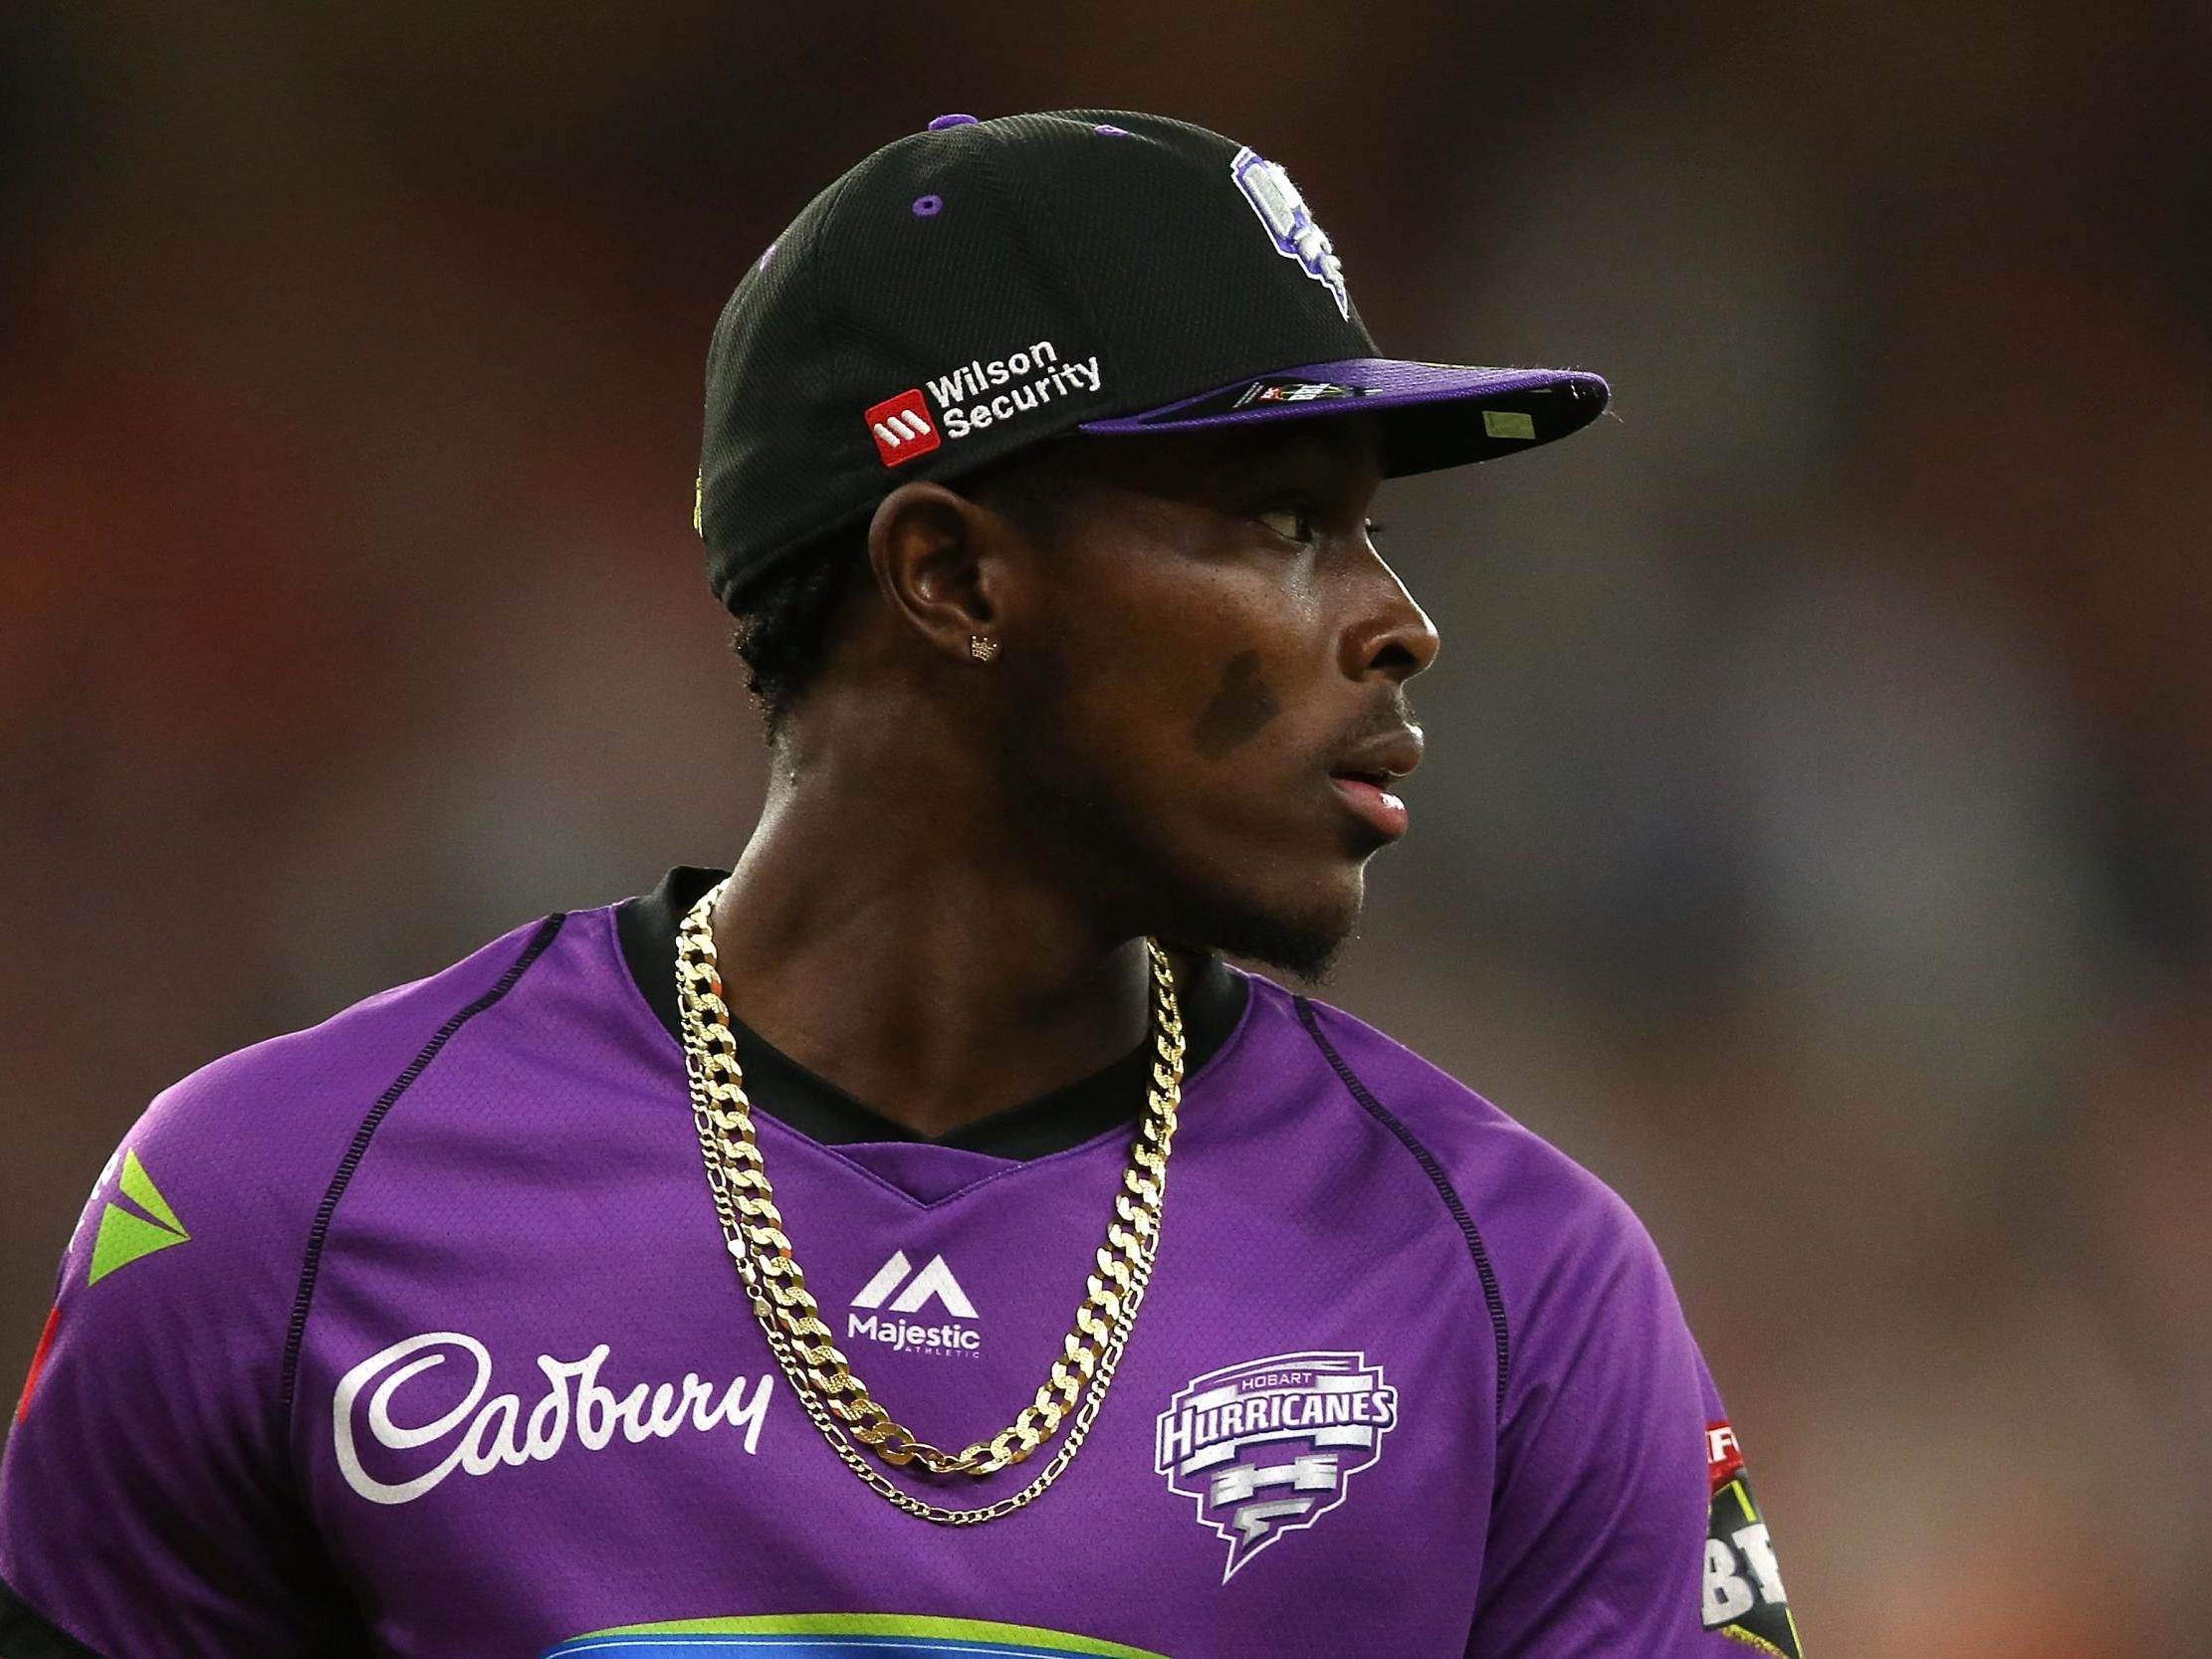 England World Cup squad: Mark Wood warns selectors over Jofra Archer inclusion